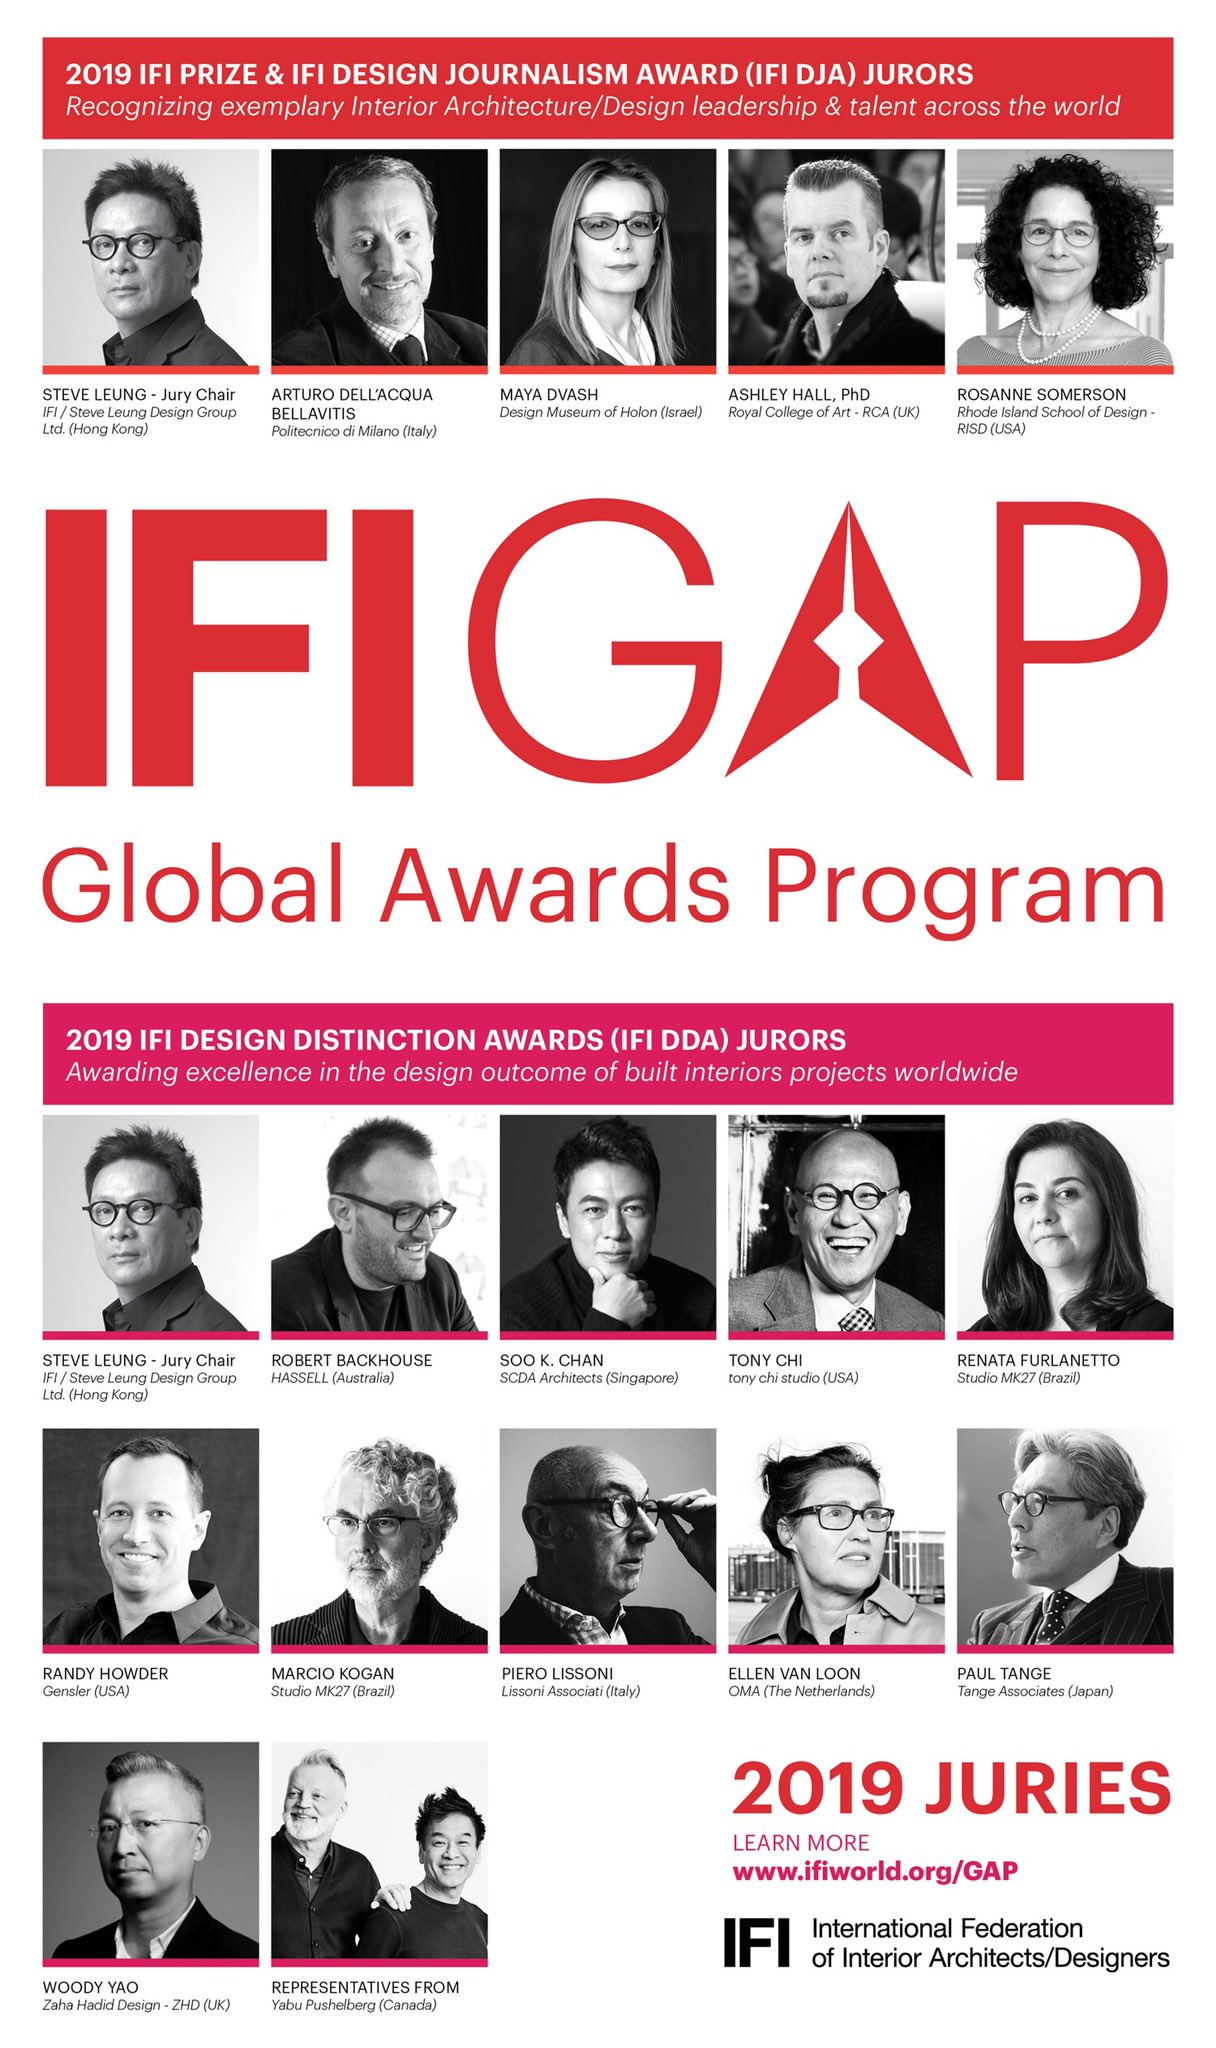 Ifi On Twitter Meet The Jury Ifi Is Thrilled To Announce The Esteemed Jurors Of Our 2019 Ifi Global Awards Program Prize Design Journalism Award Dja And Design Distinction Awards